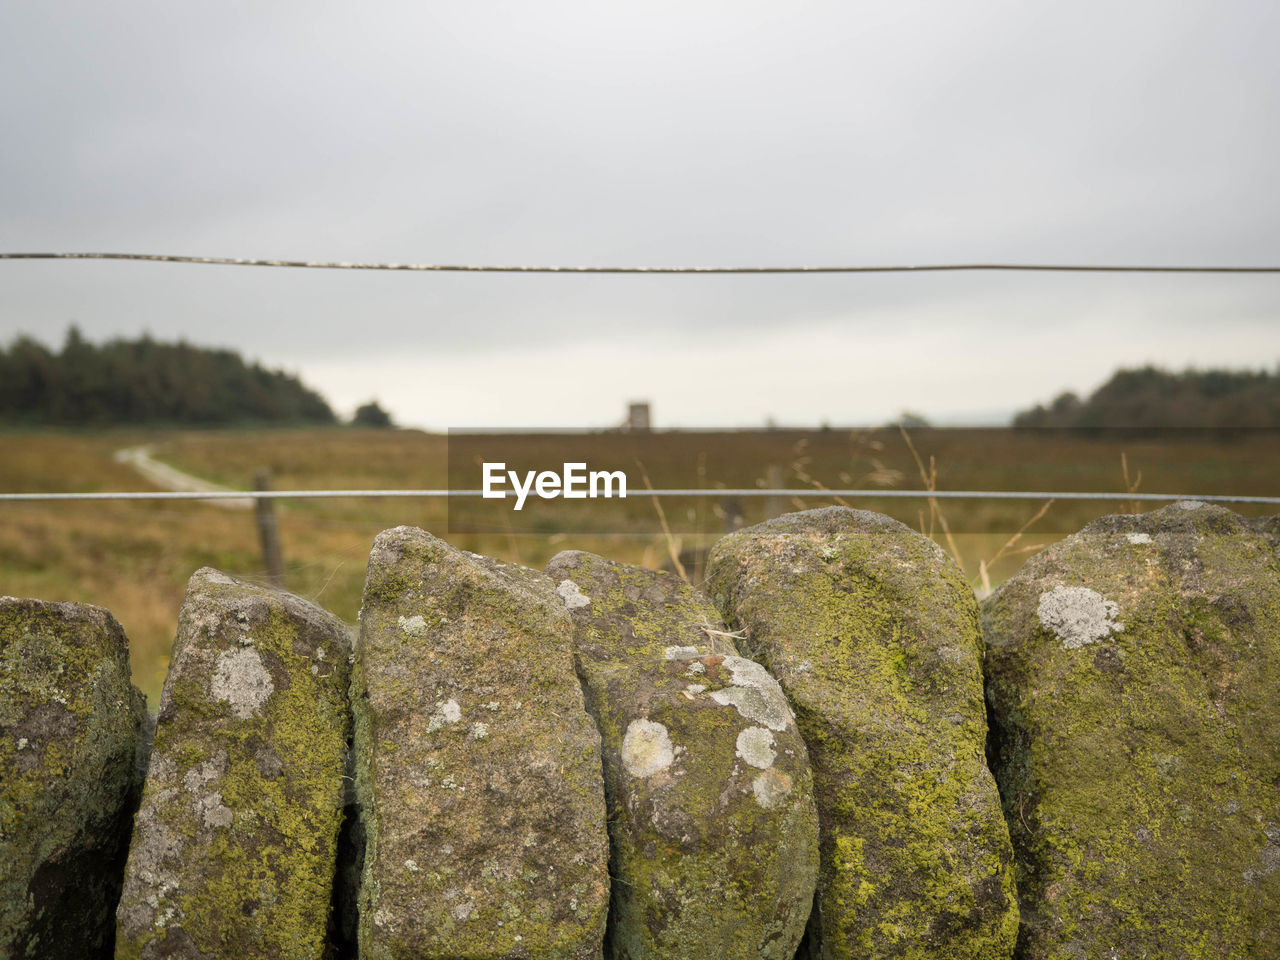 sky, nature, no people, solid, rock, plant, focus on foreground, rock - object, day, fence, barrier, tranquility, boundary, land, close-up, security, landscape, outdoors, protection, safety